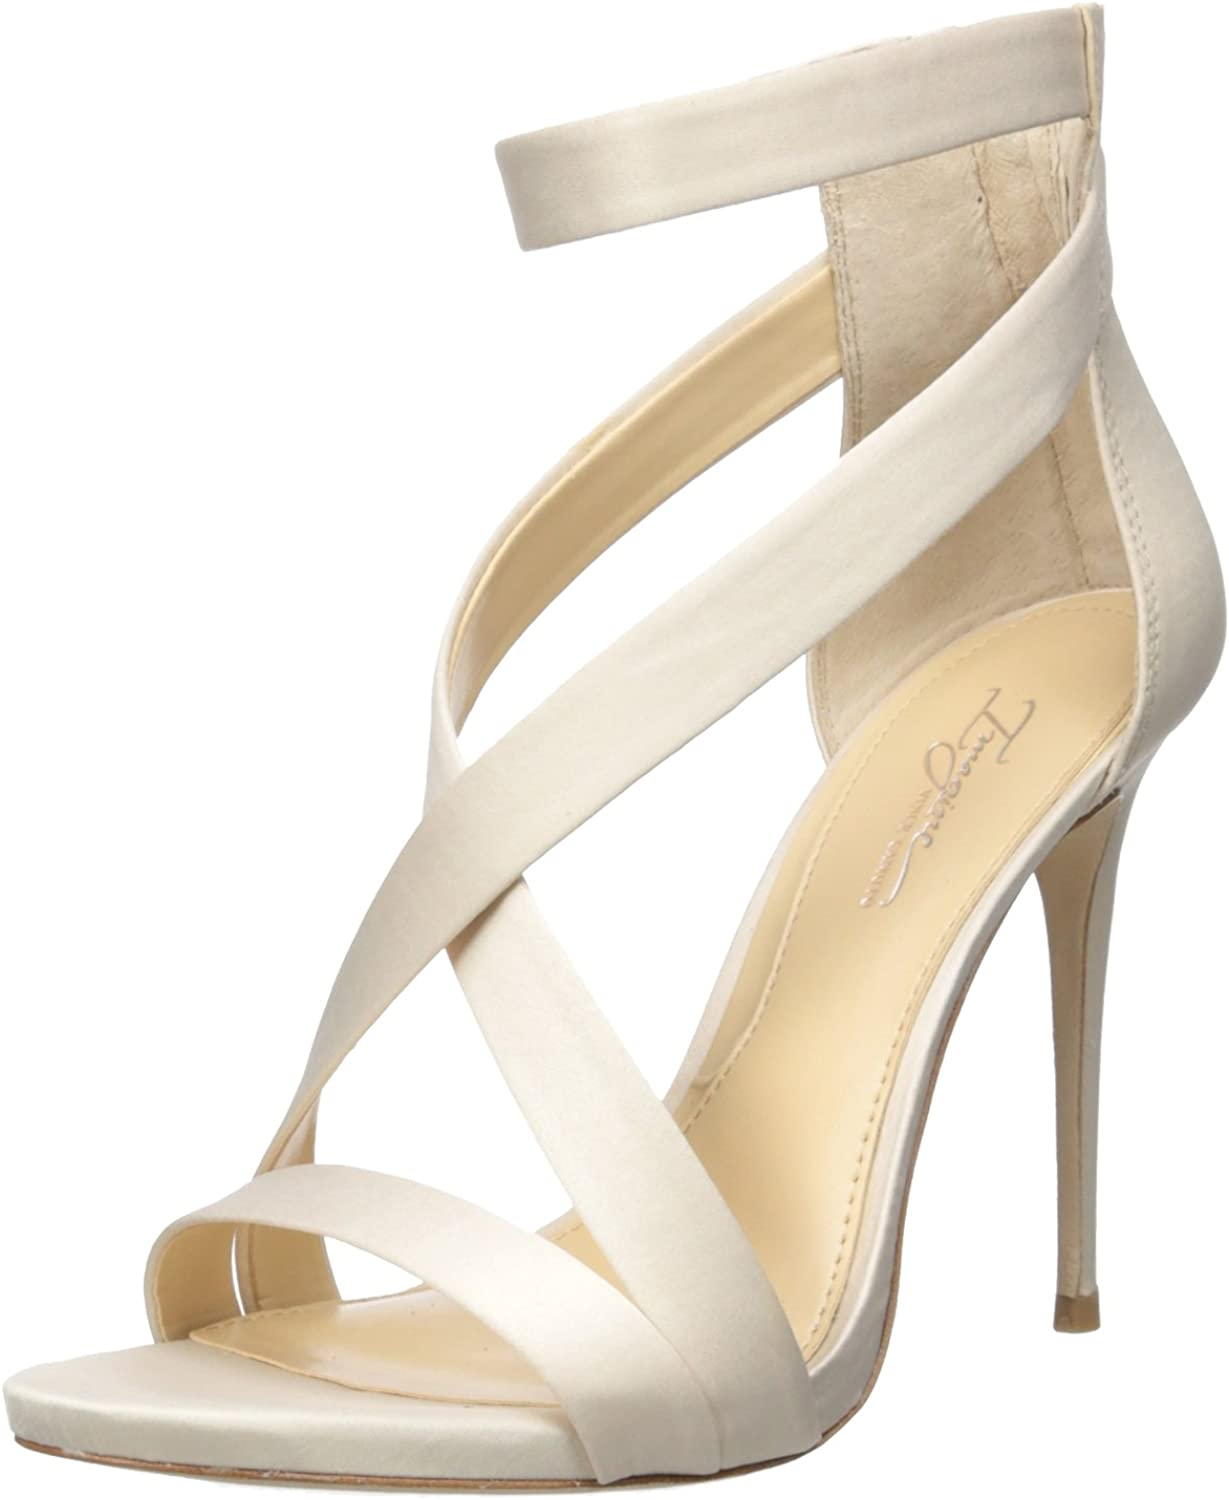 Imagine by Vince Camuto Women's Devin Strappy Sandal